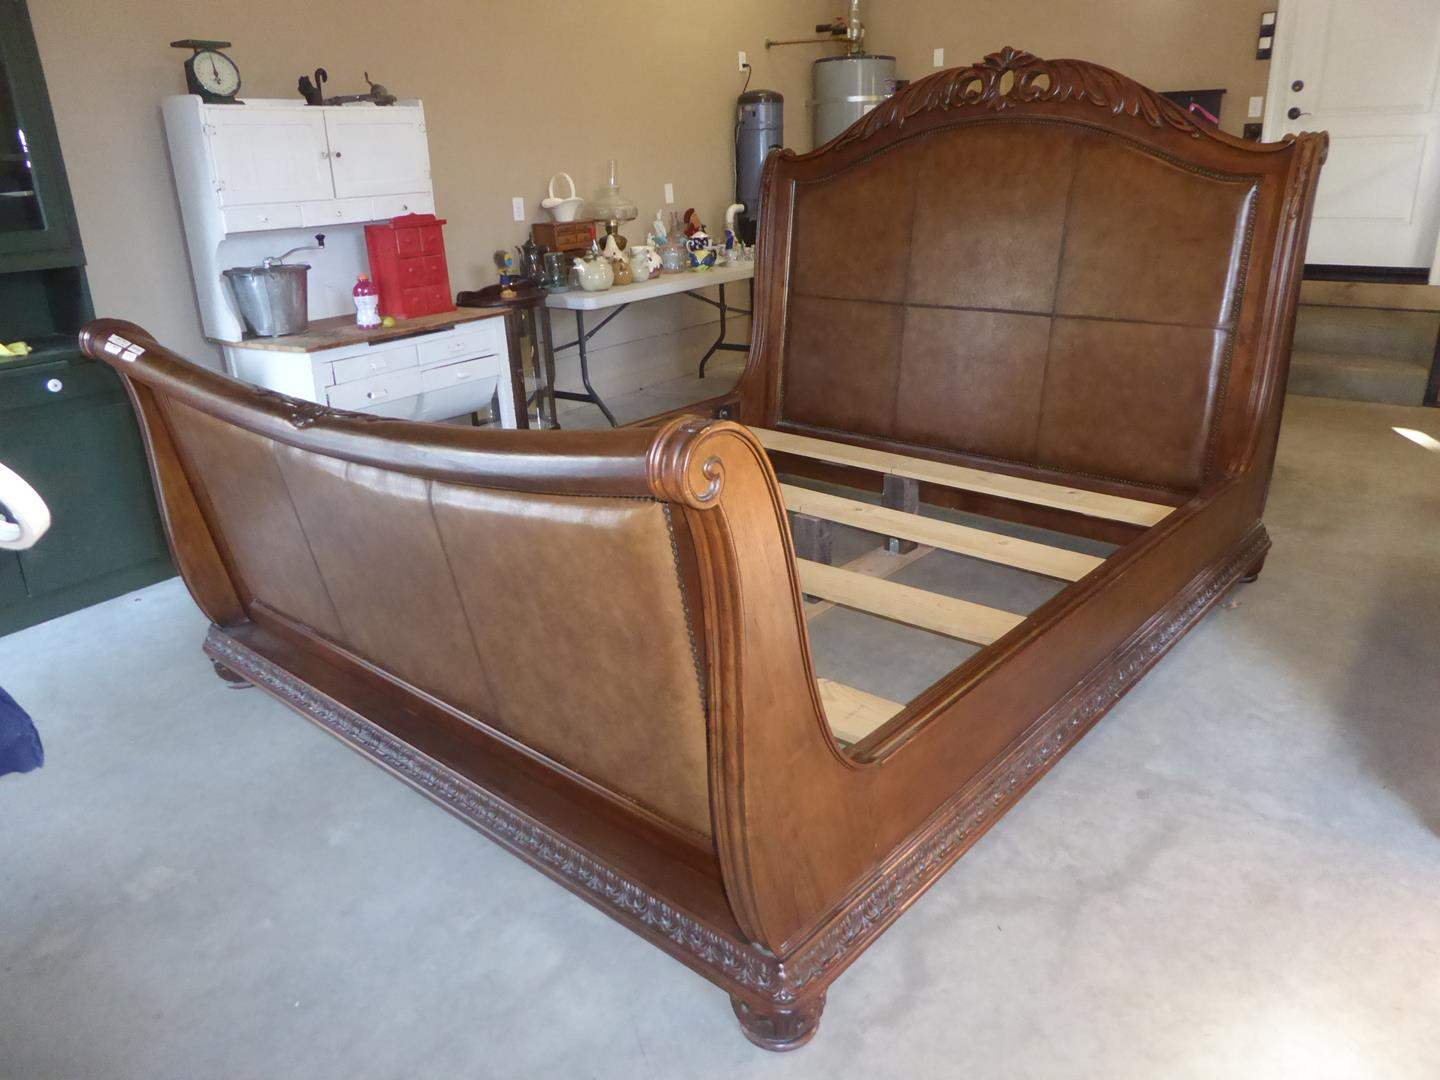 Lot # 50 - 'Pulaski' Wooden Furniture King Size Sleigh Bed (main image)